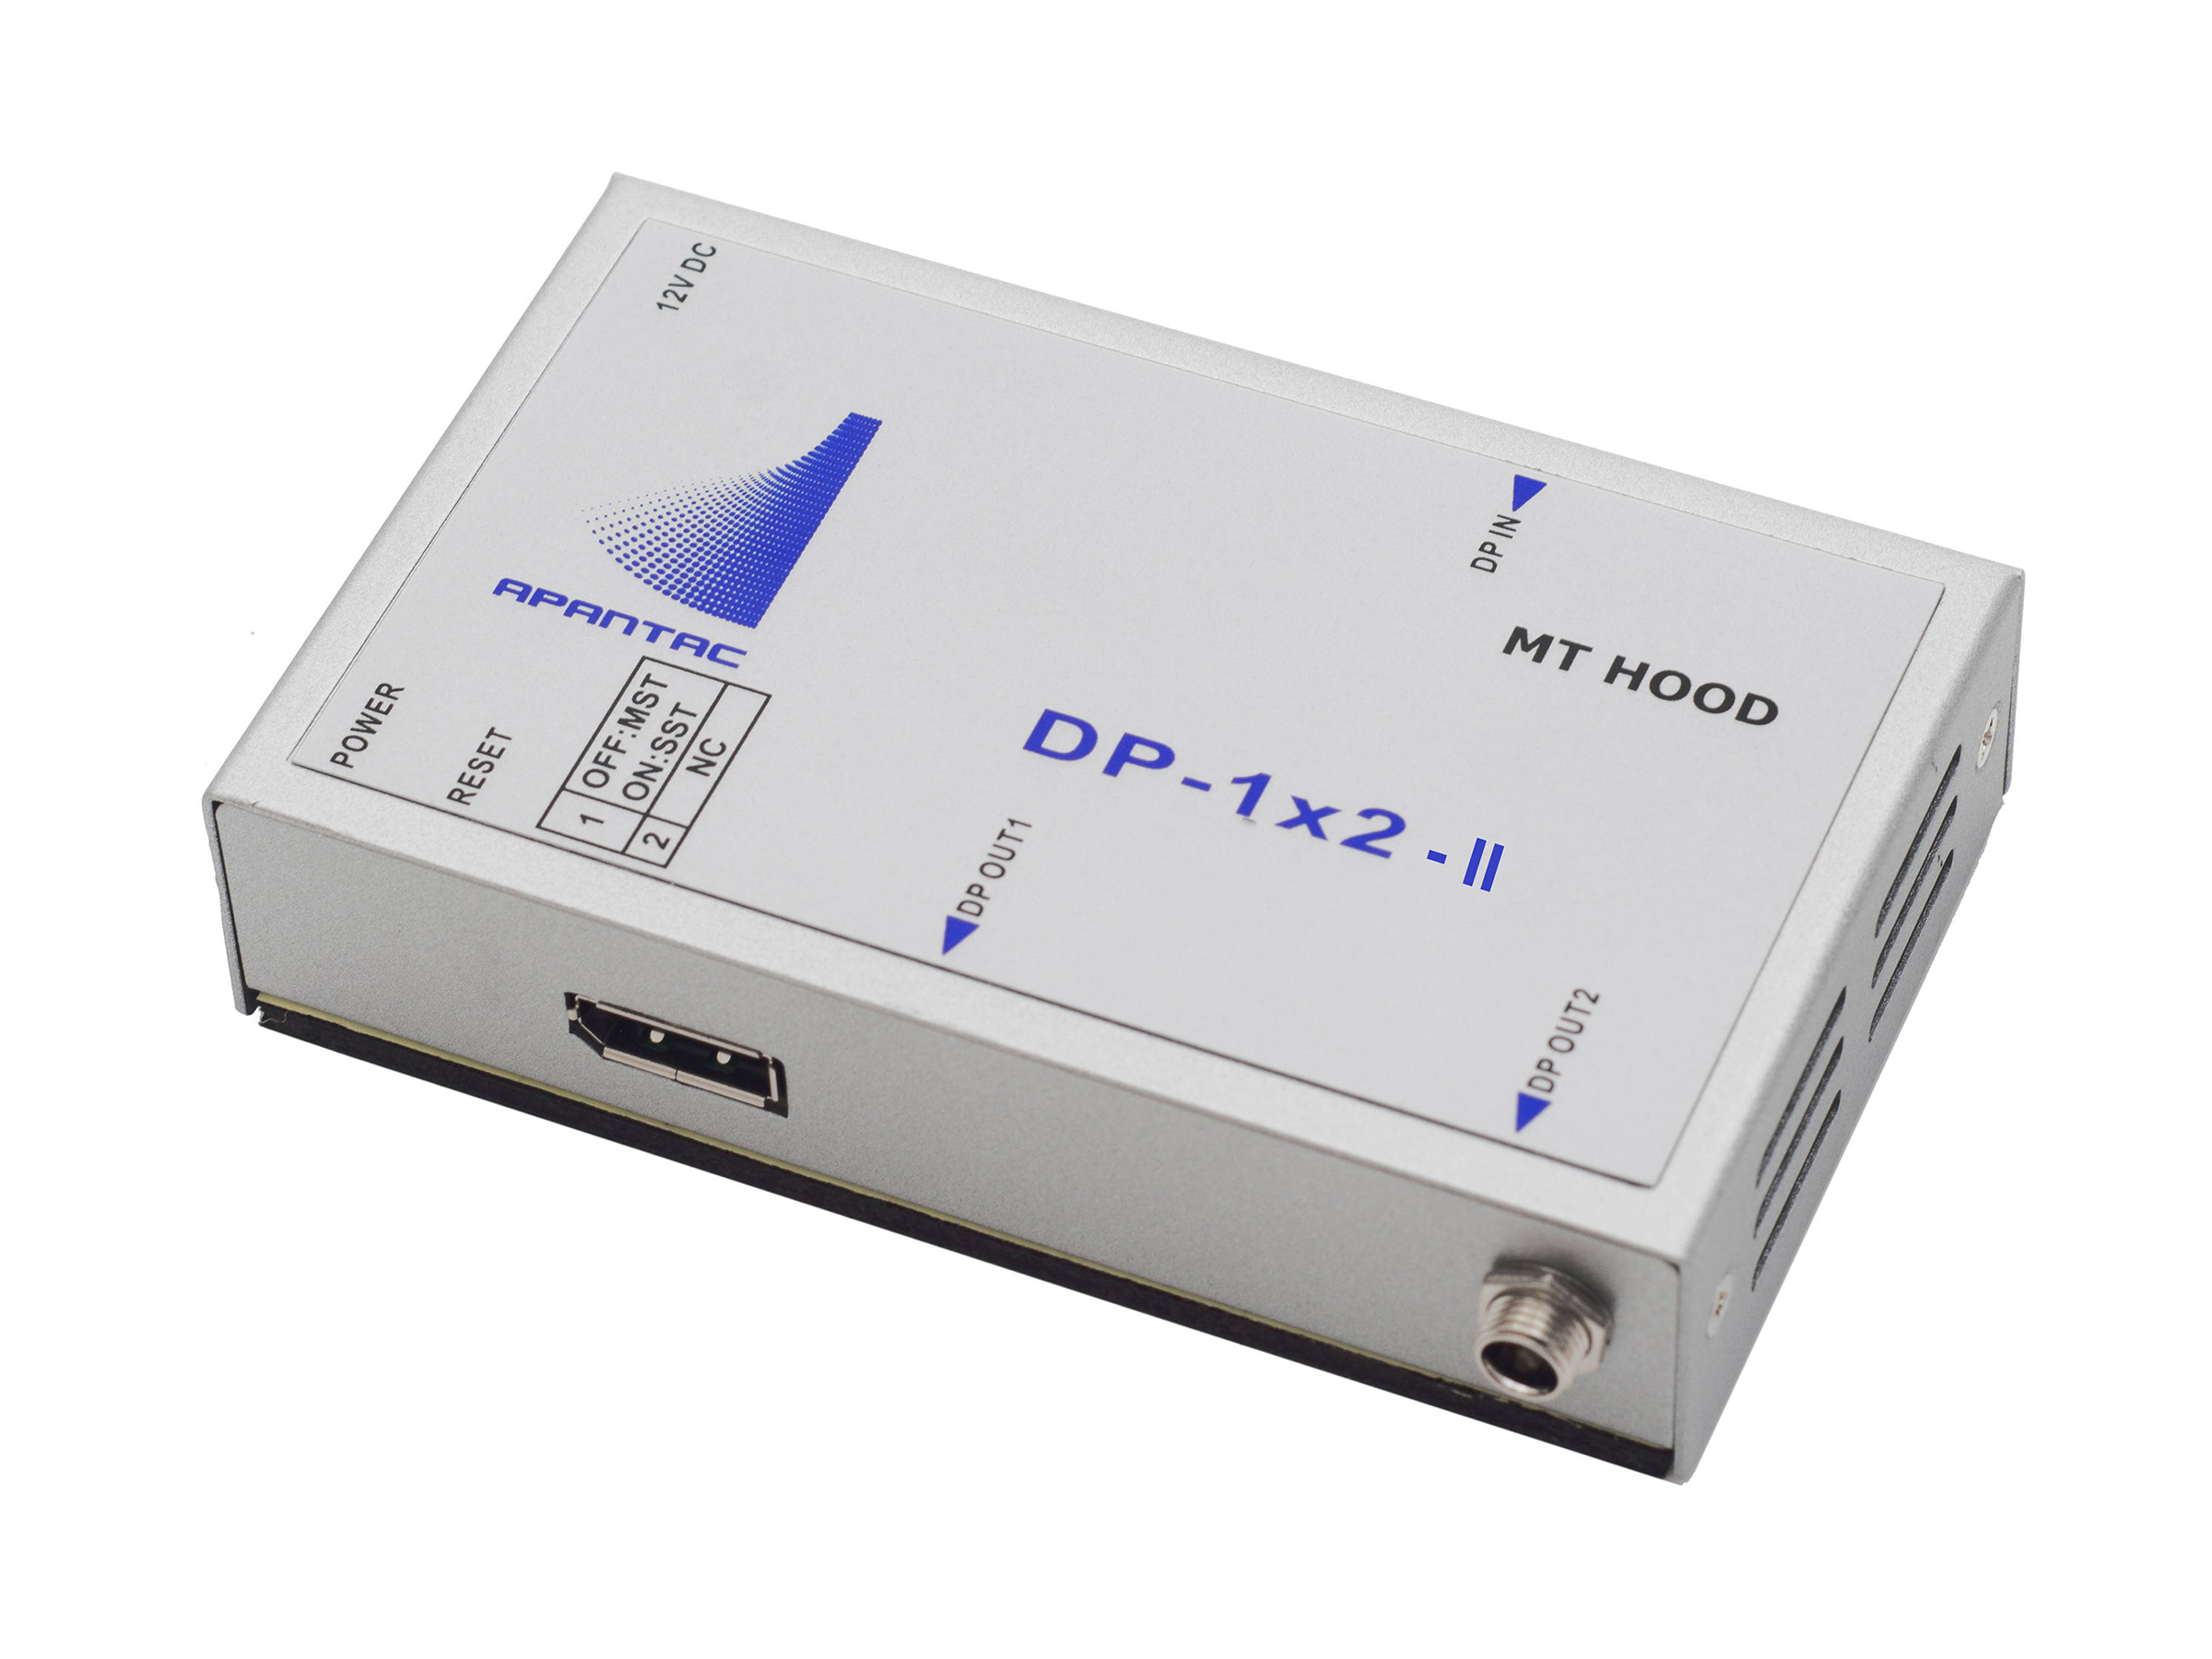 DP-1x2-II 1x2 DisplayPort 1.2 Distribution Amplifier/Splitter by Apantac